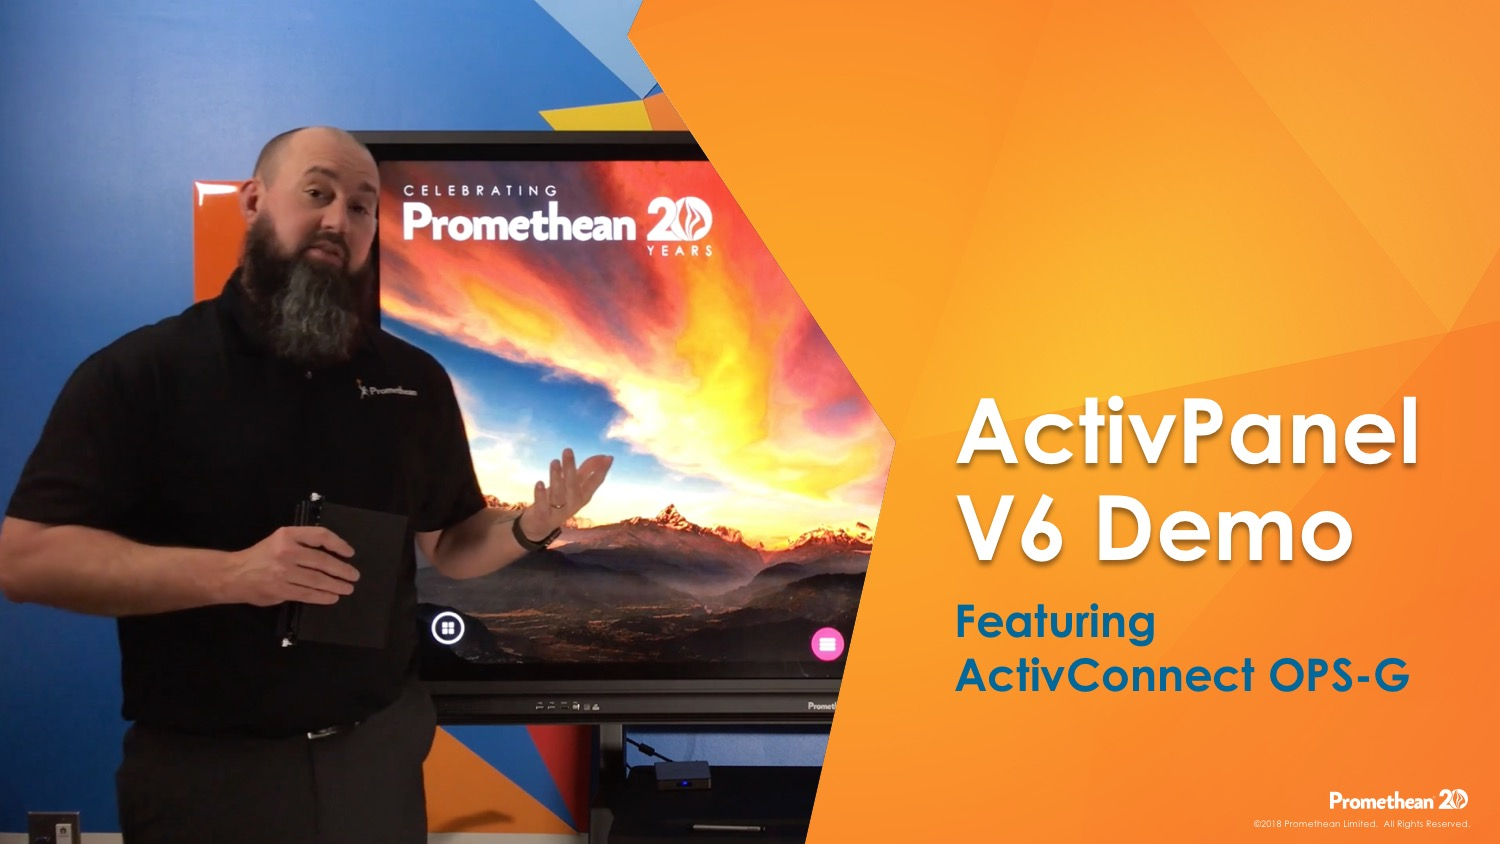 ActivPanel V6 Demo Featuring ActivConnect OPS-G